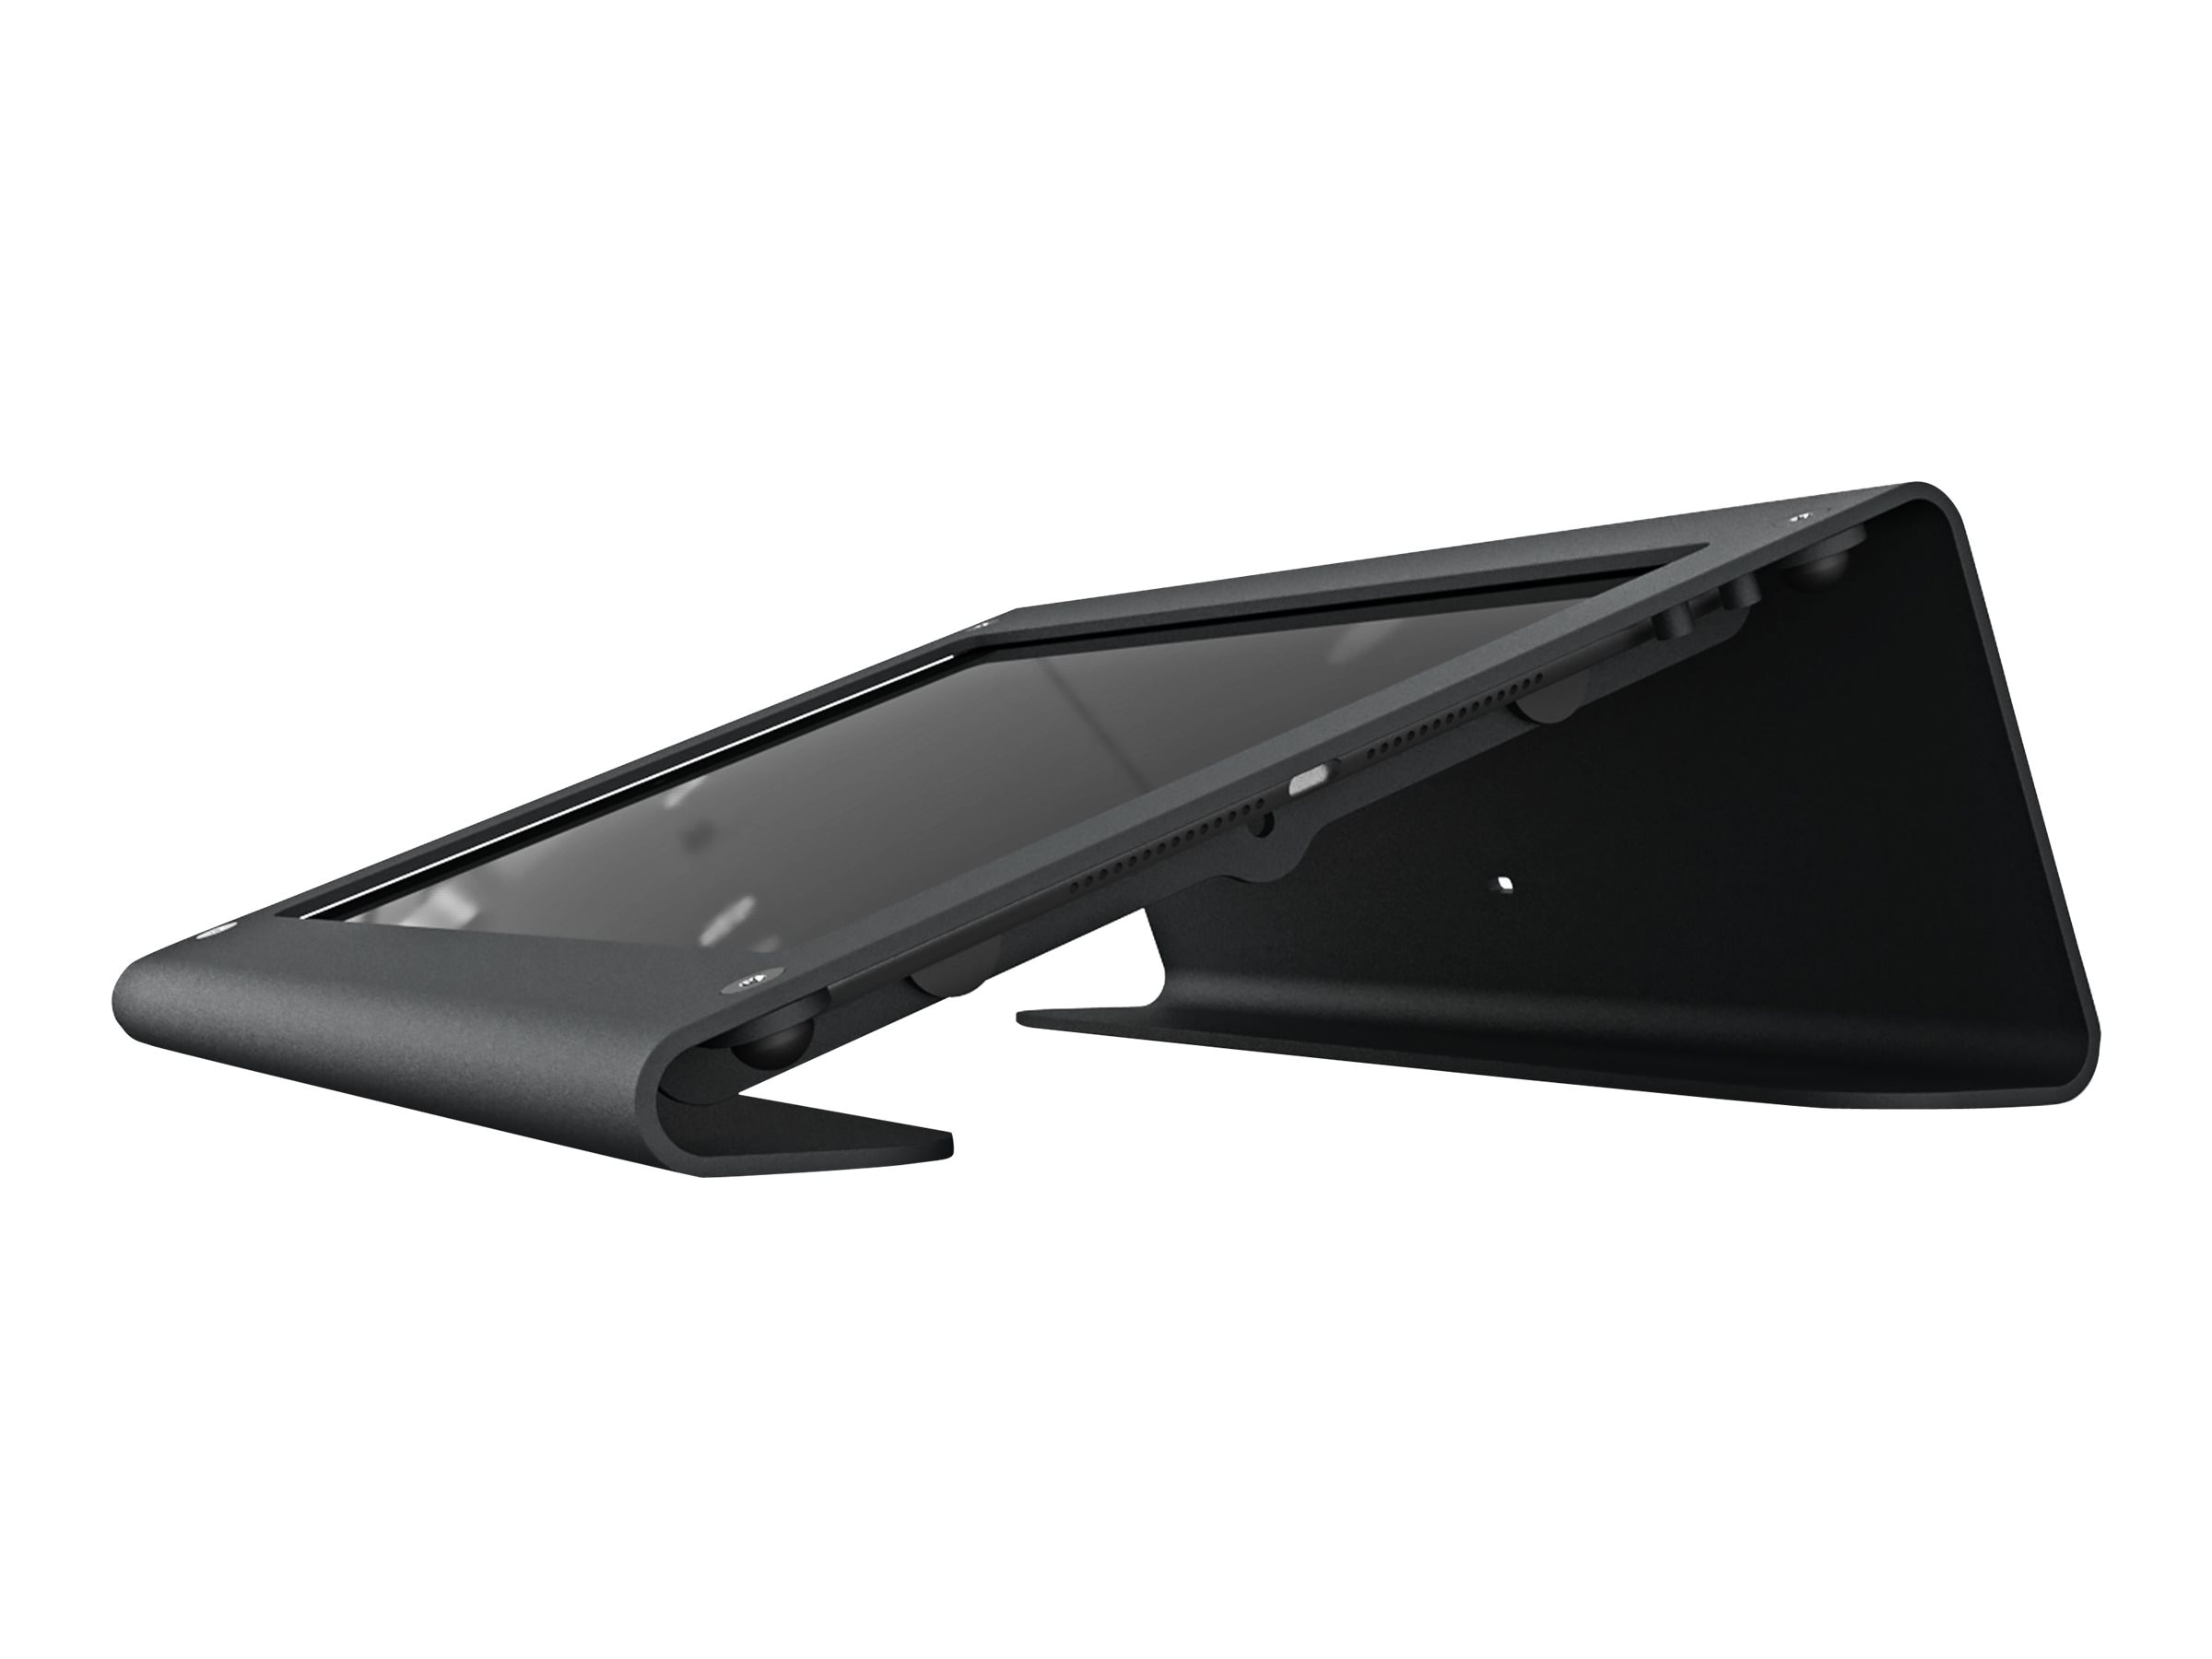 Kensington WINDFALL CONSOLE FOR SURFACE PRO 3 4